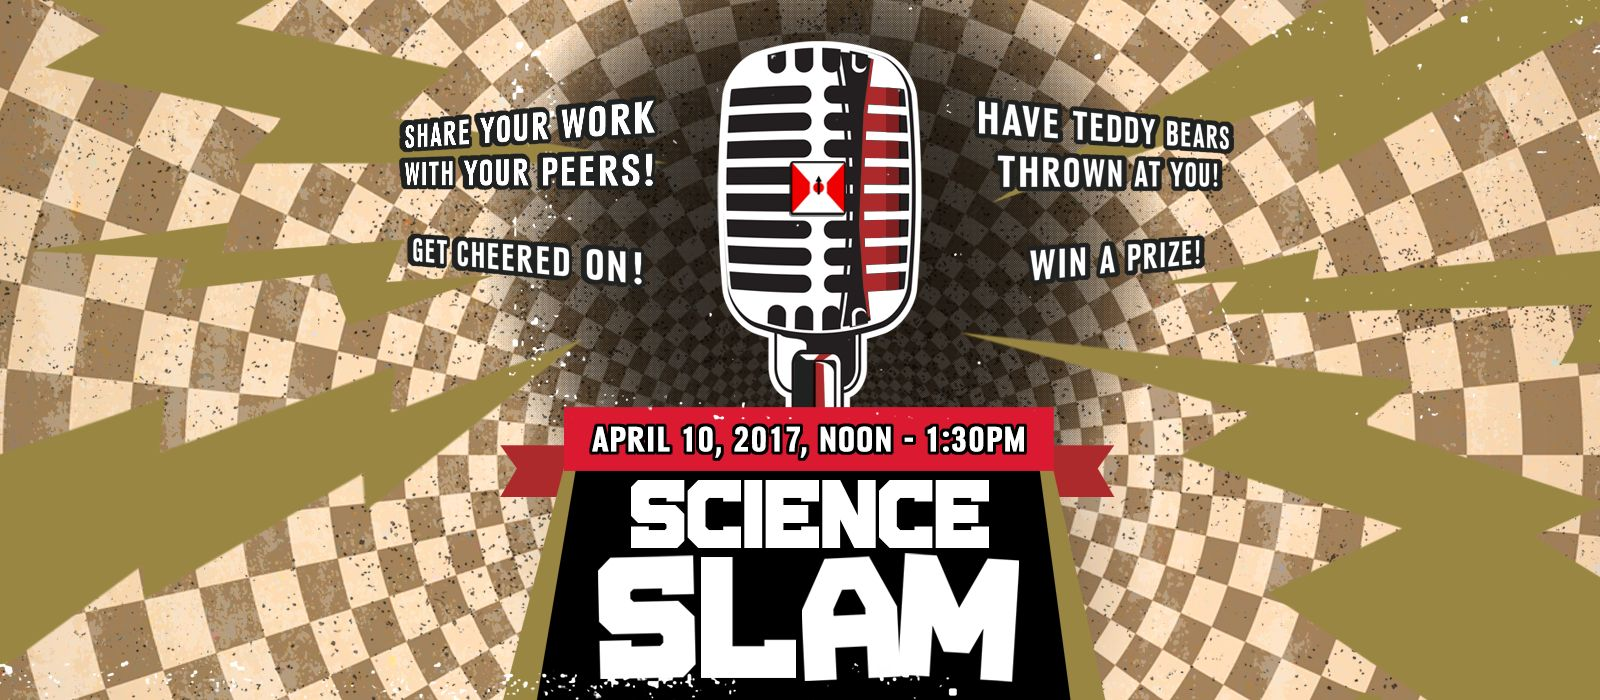 Second annual Science Slam is April 10